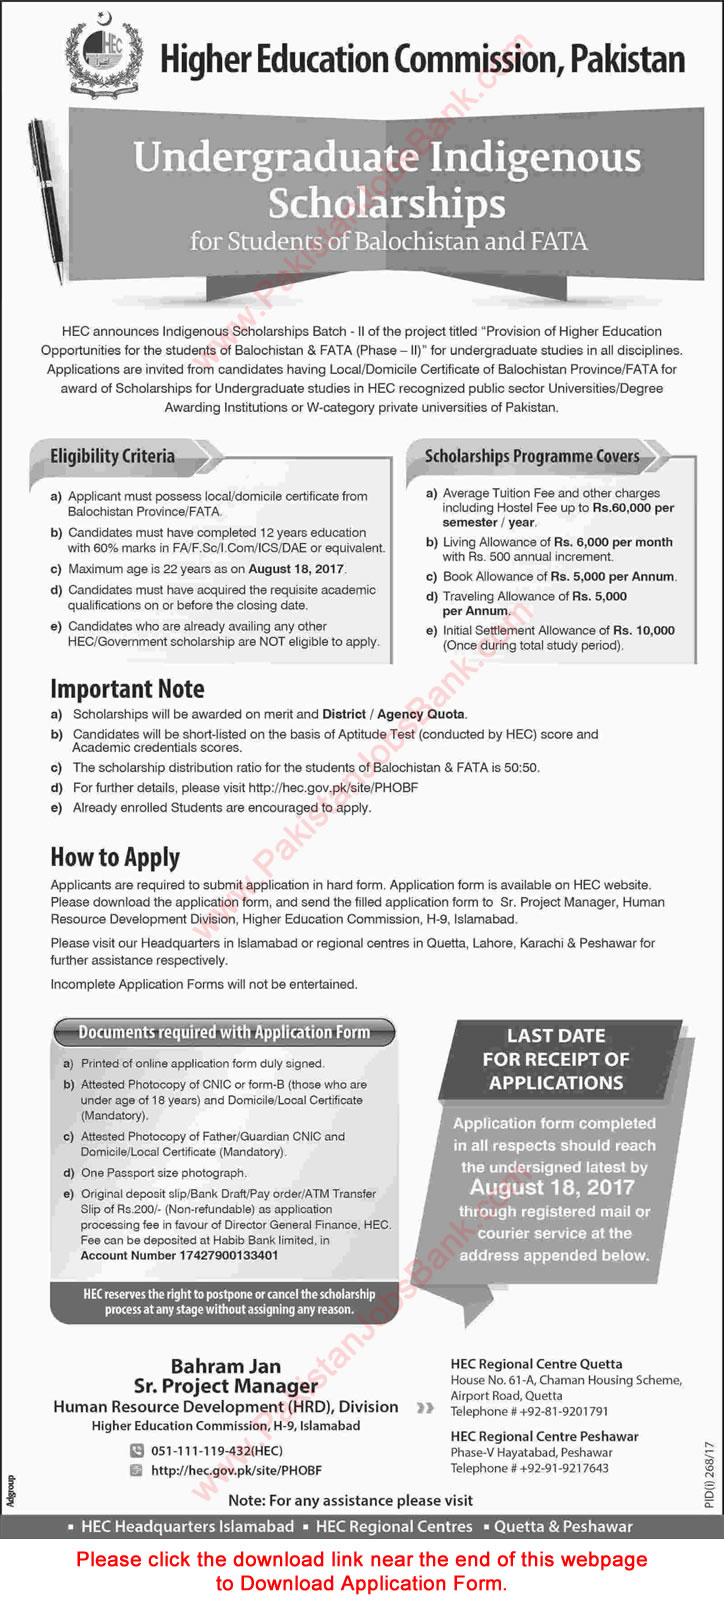 Ad_Dawn_Job_20170716_002 Online Application Form For Hec Indigenous Scholarship on